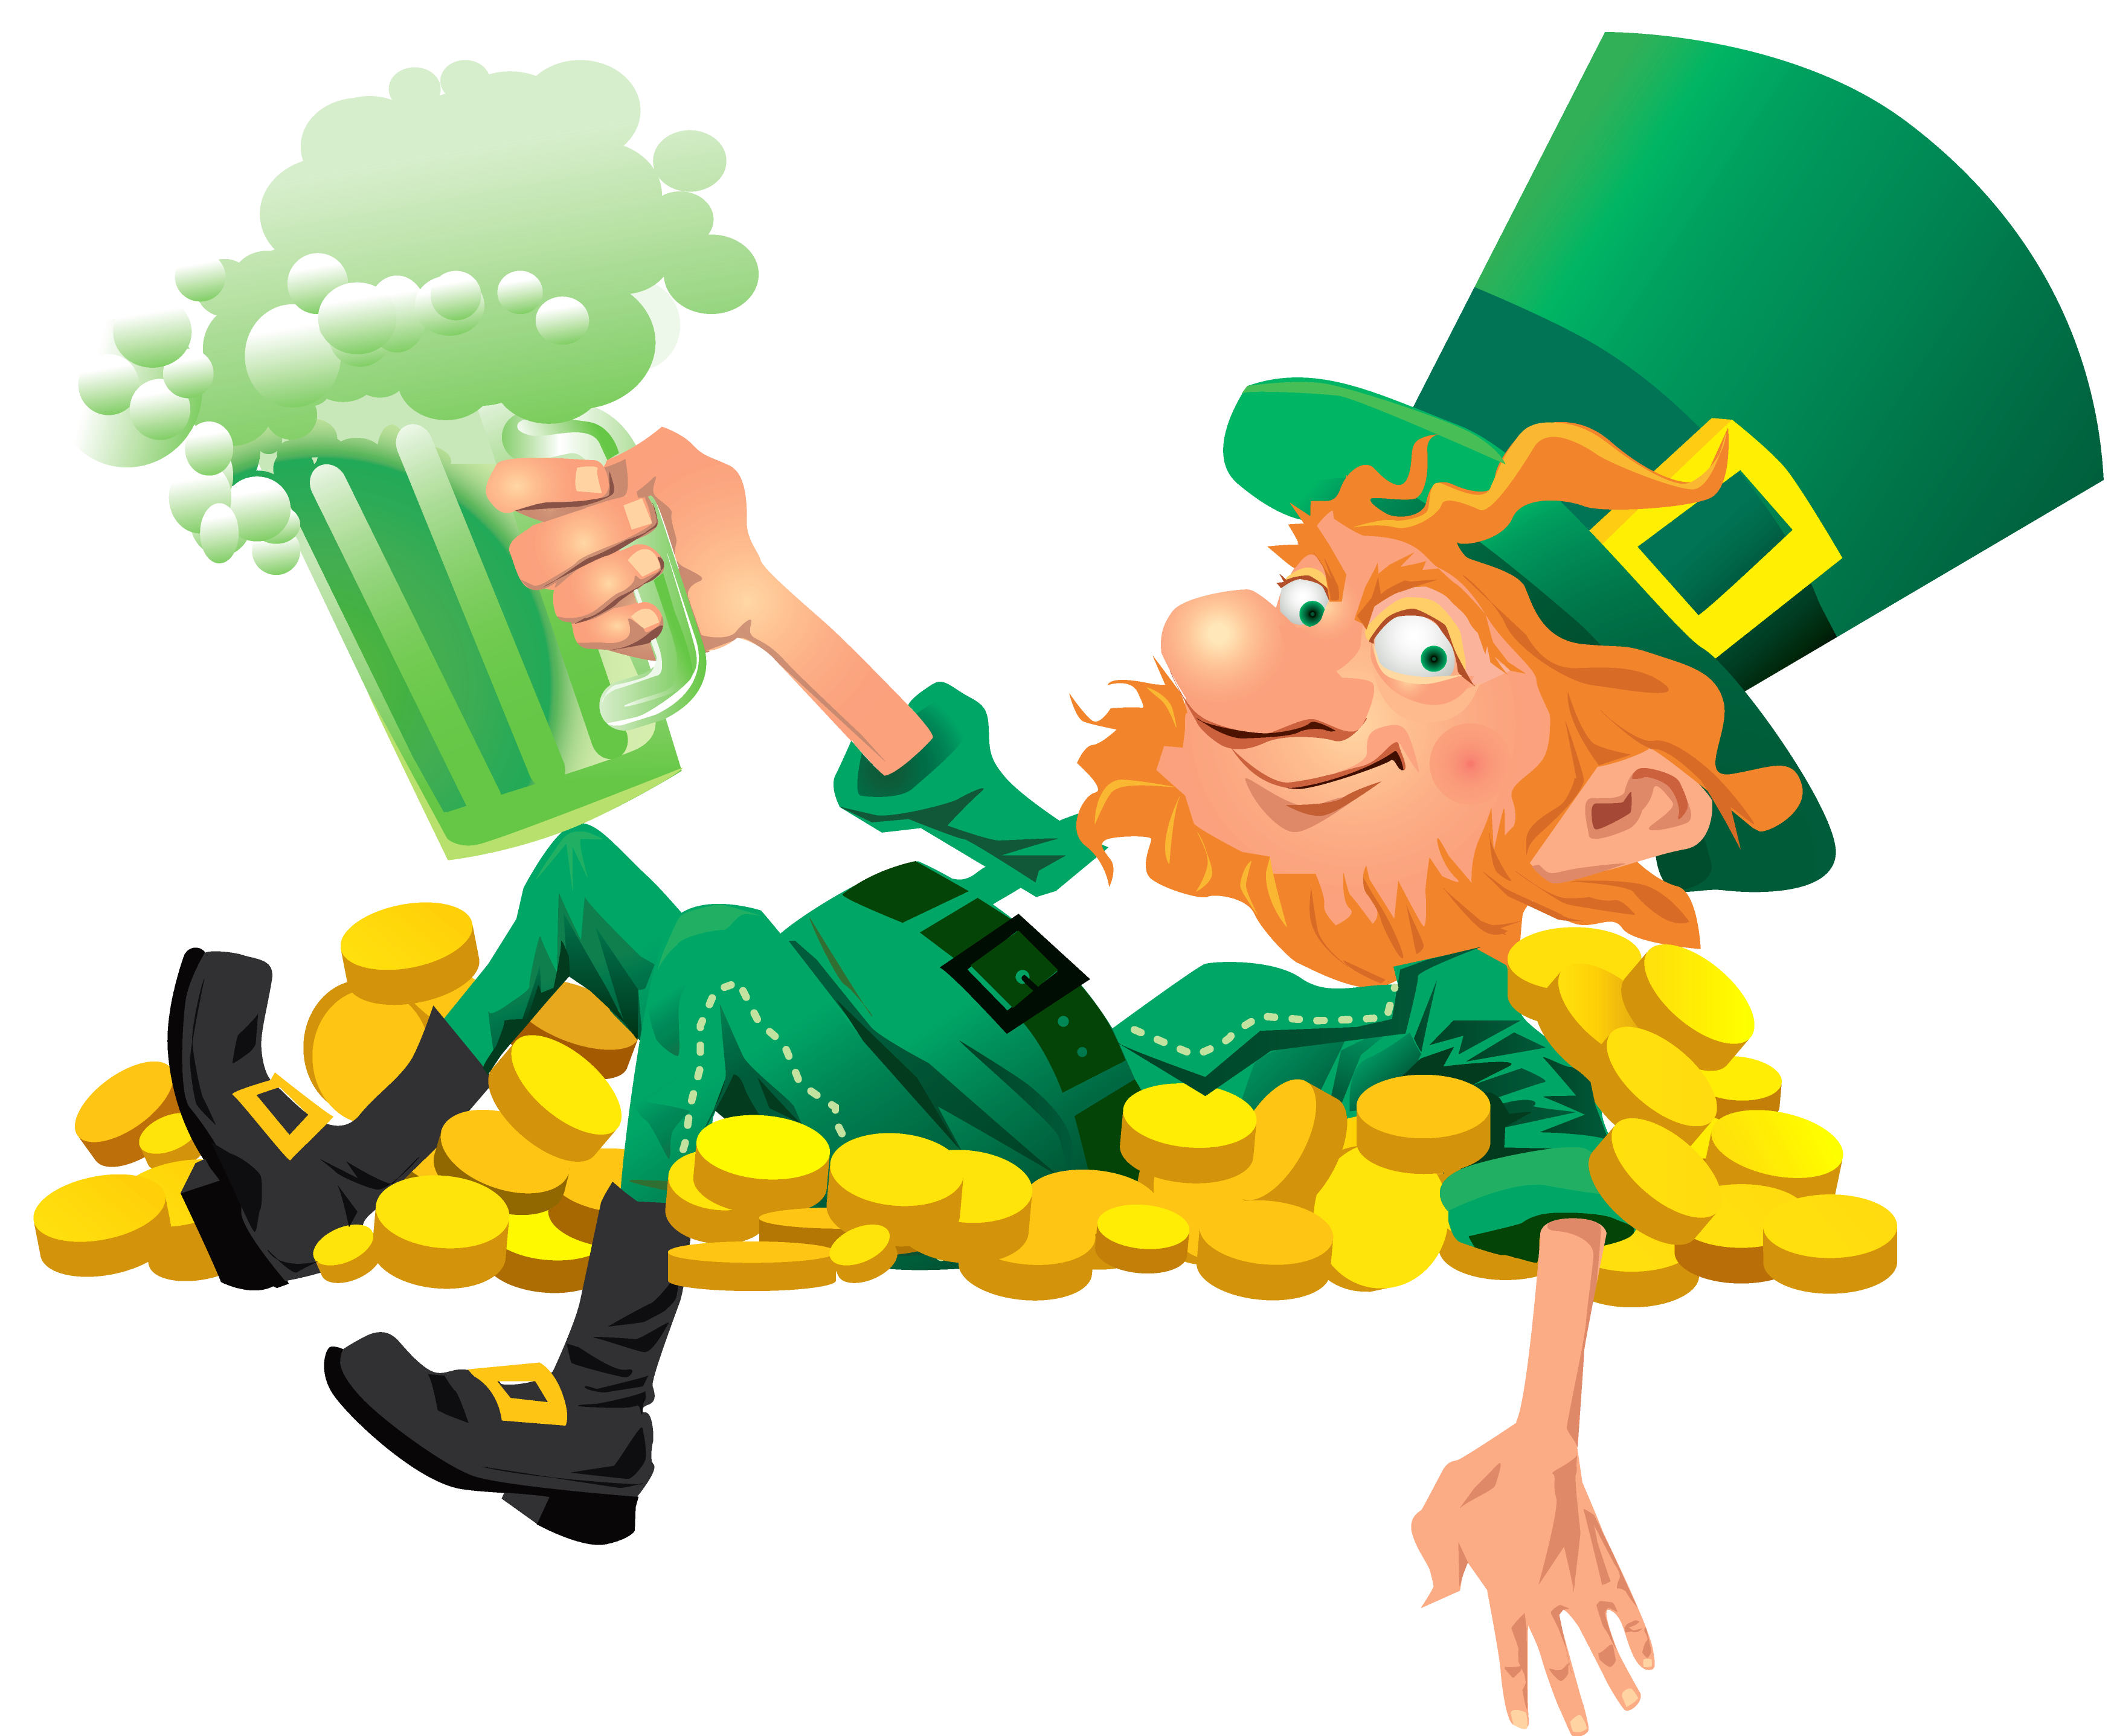 Coin clipart leprechaun gold. Beer clip art images